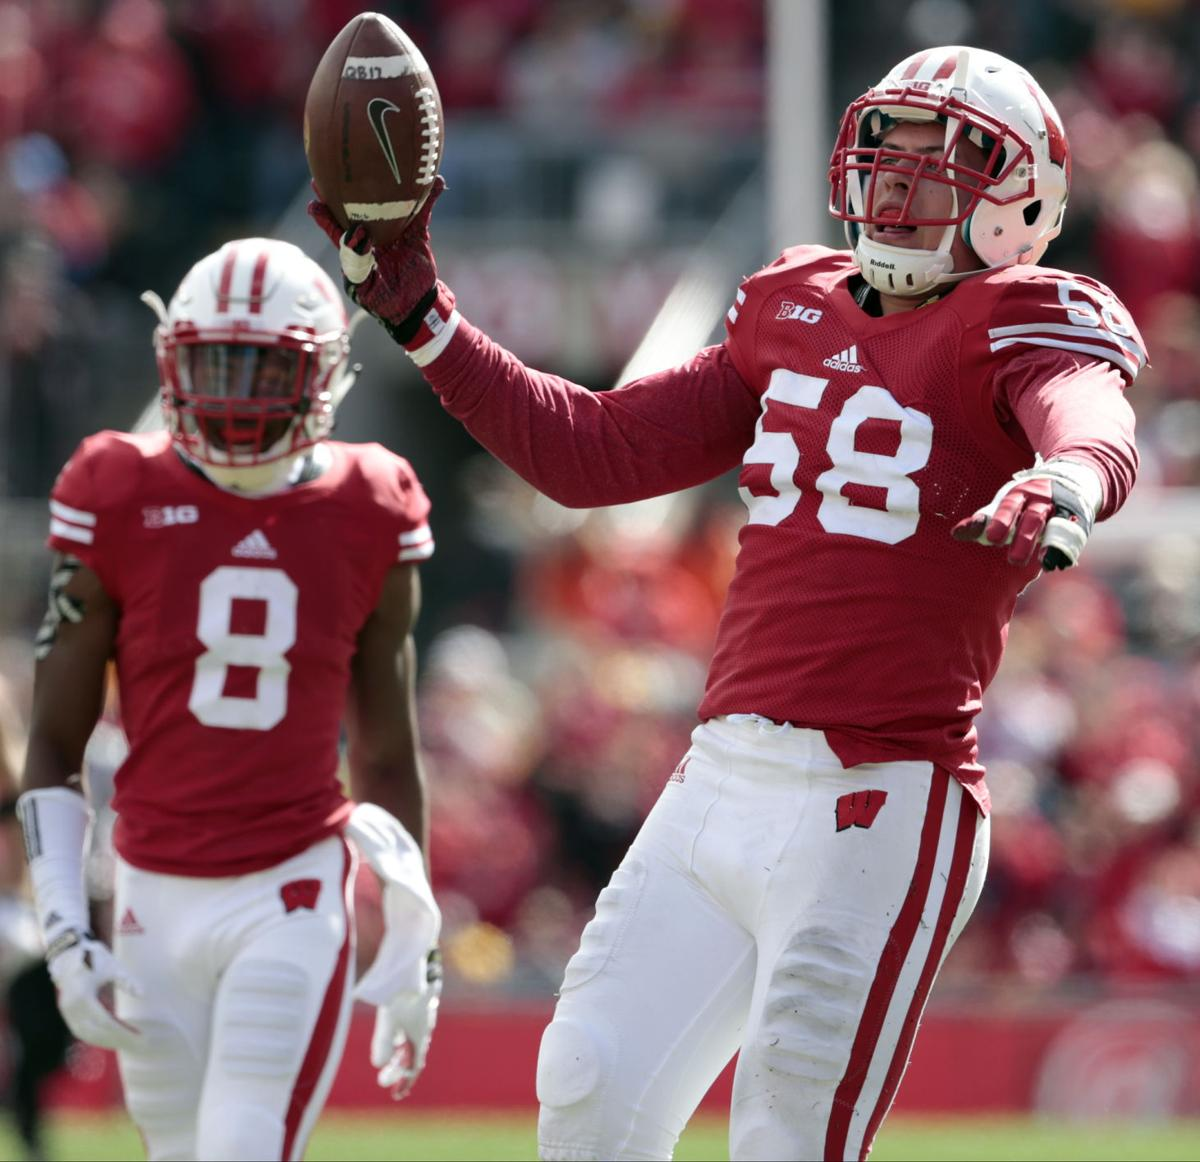 badgers football joe schobert s career continues on upward badgers football joe schobert s career continues on upward trajectory entering nfl draft